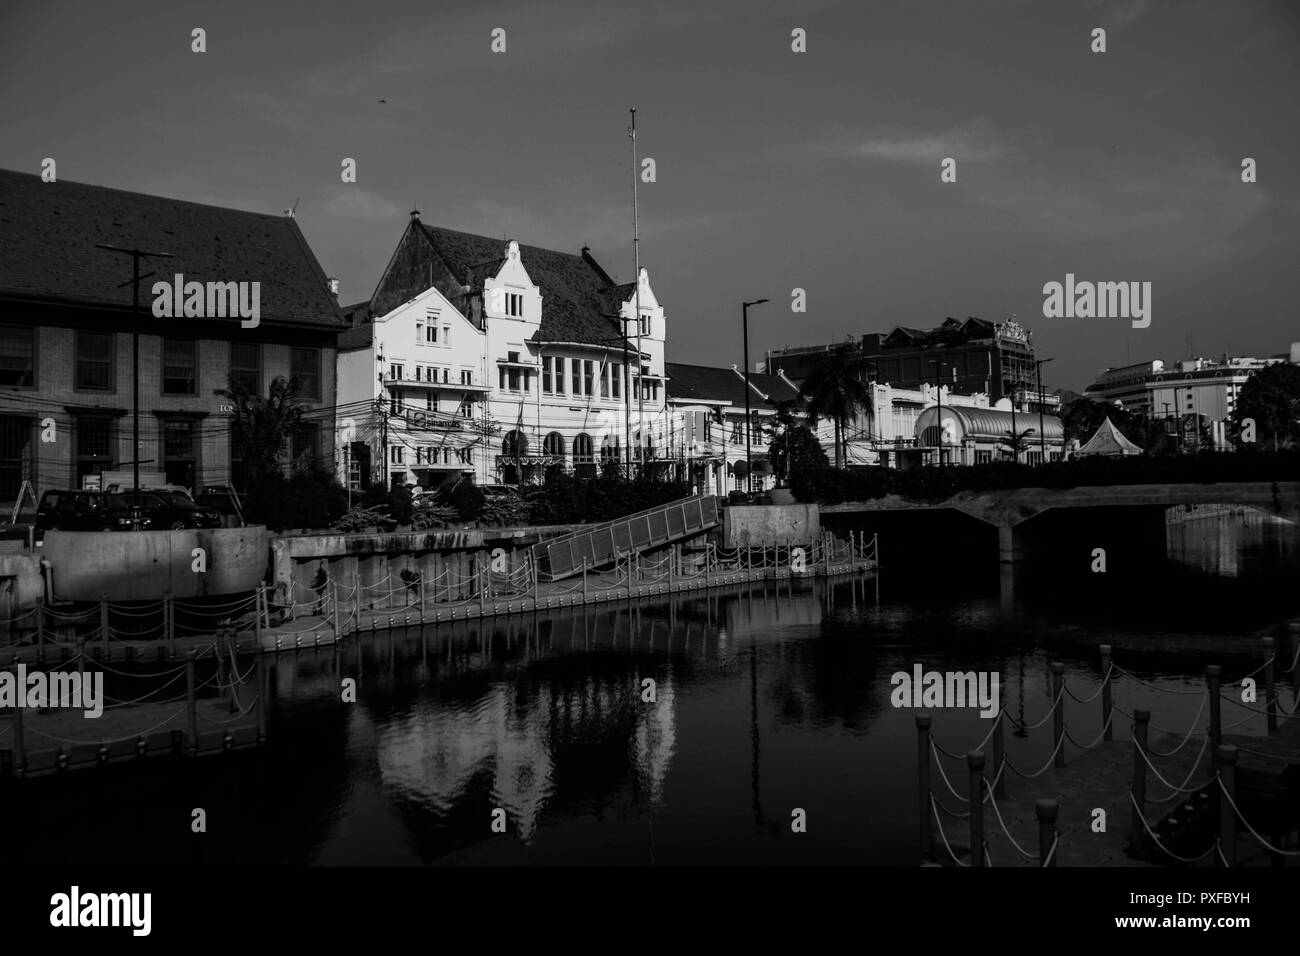 Old town Batavia - Stock Image